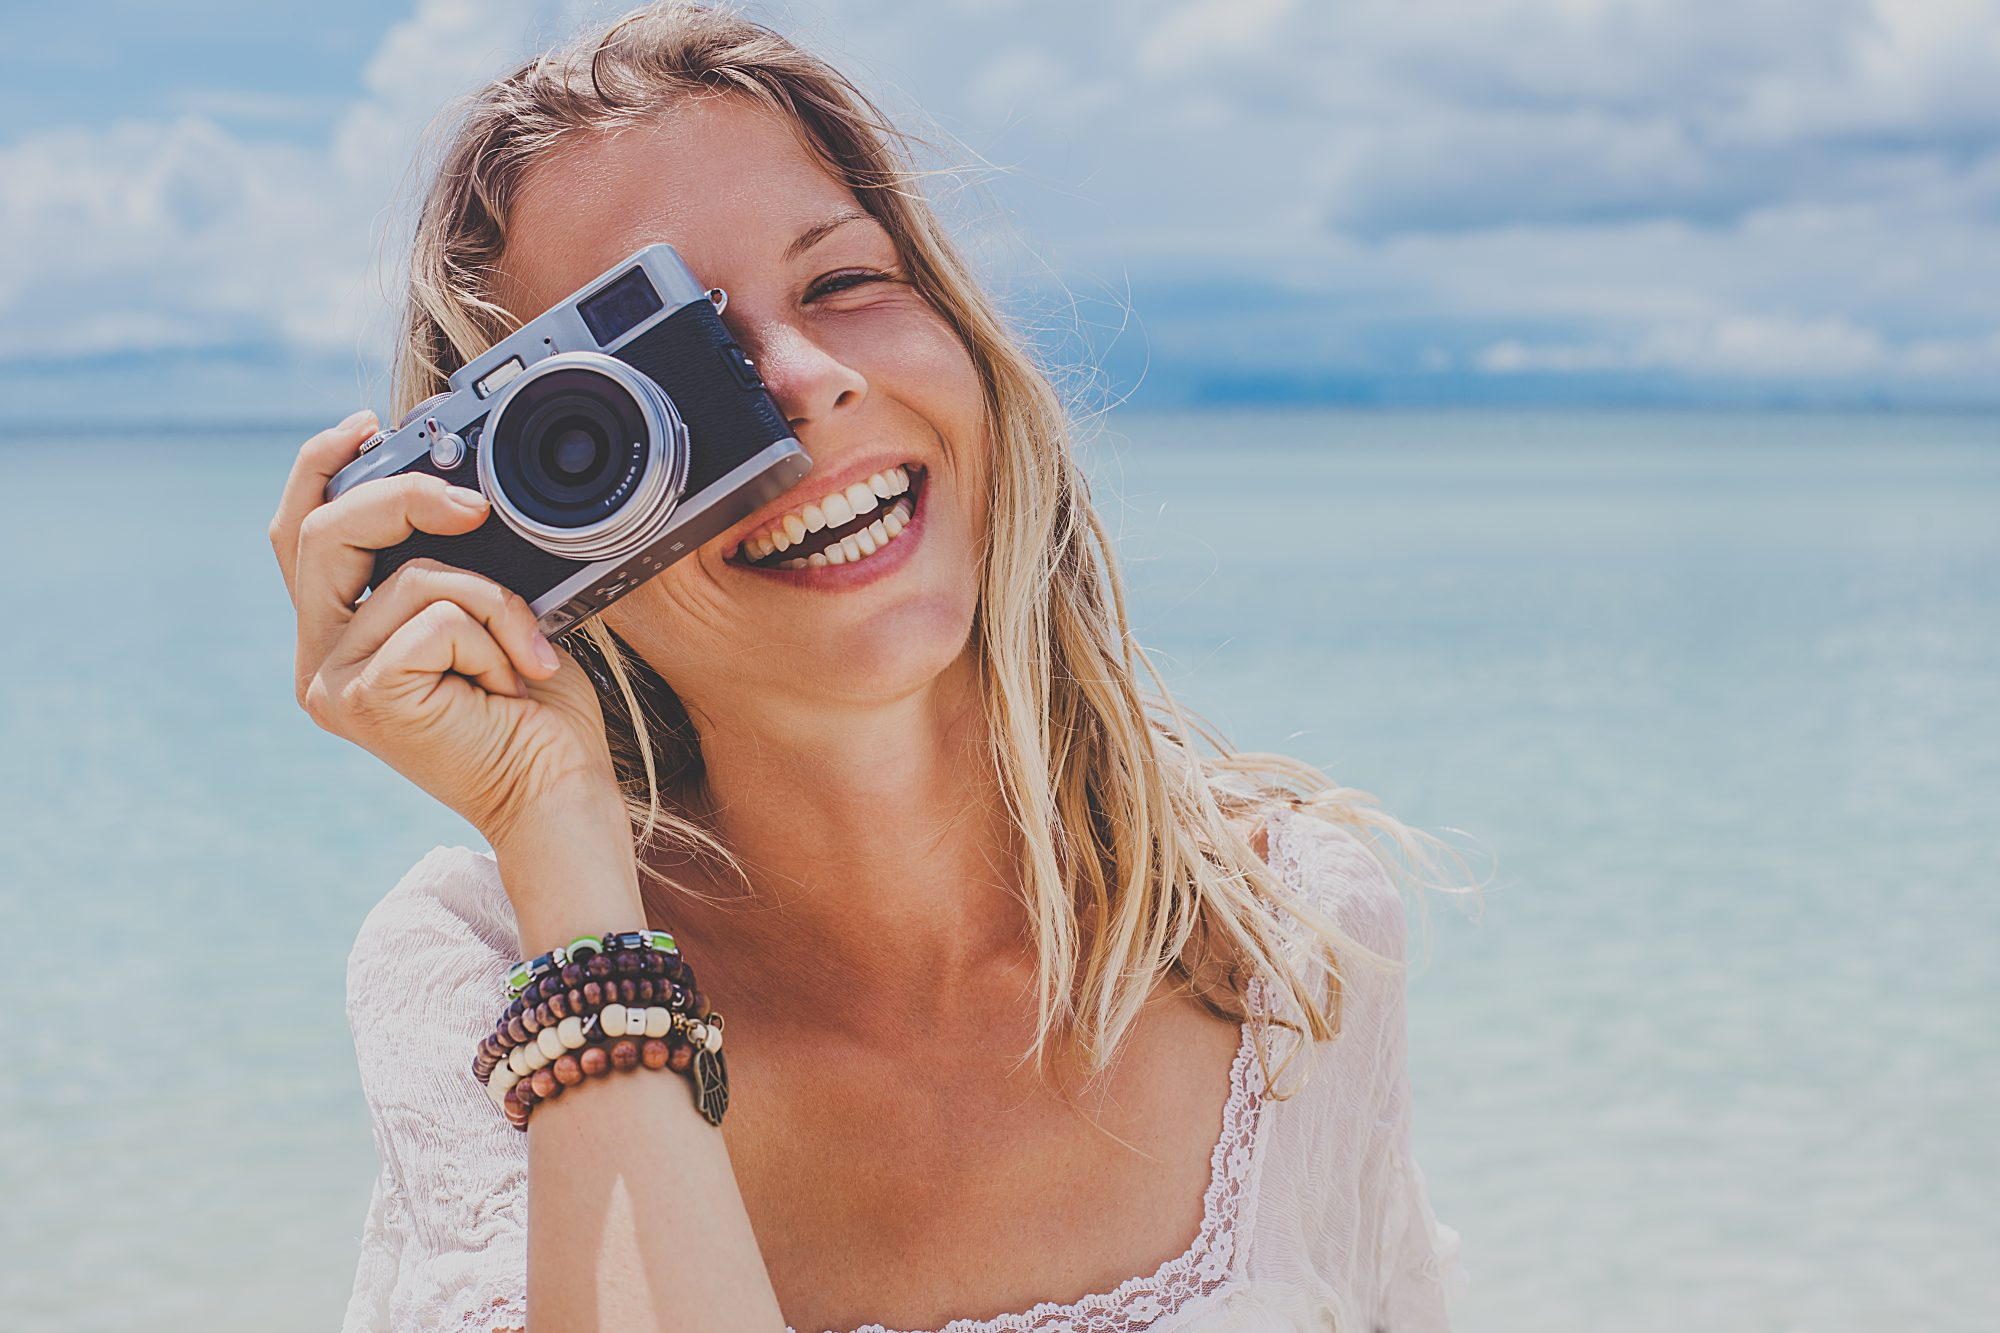 Girl a the Beach with Camera